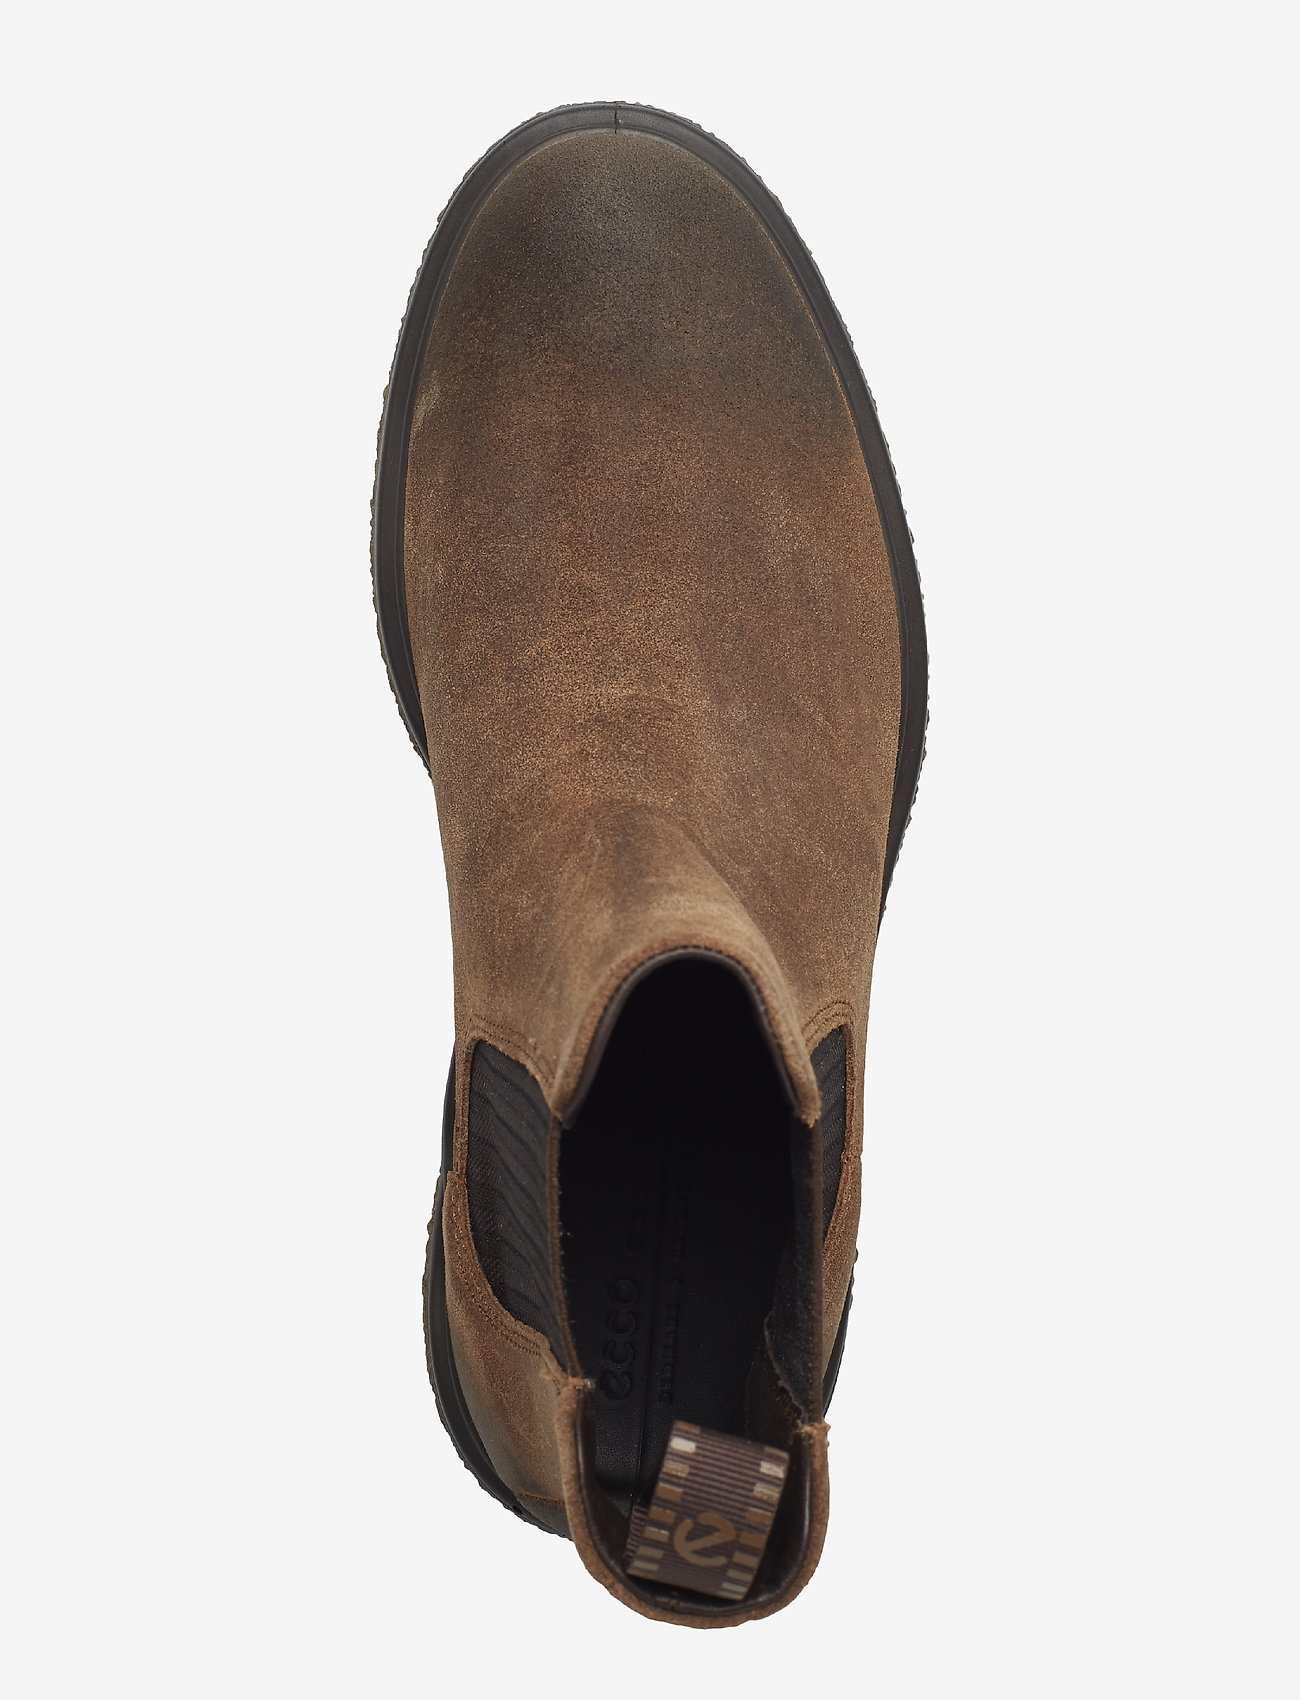 Ecco Crepetray Hybrid M - Chelsea Boots Cocoa Brown